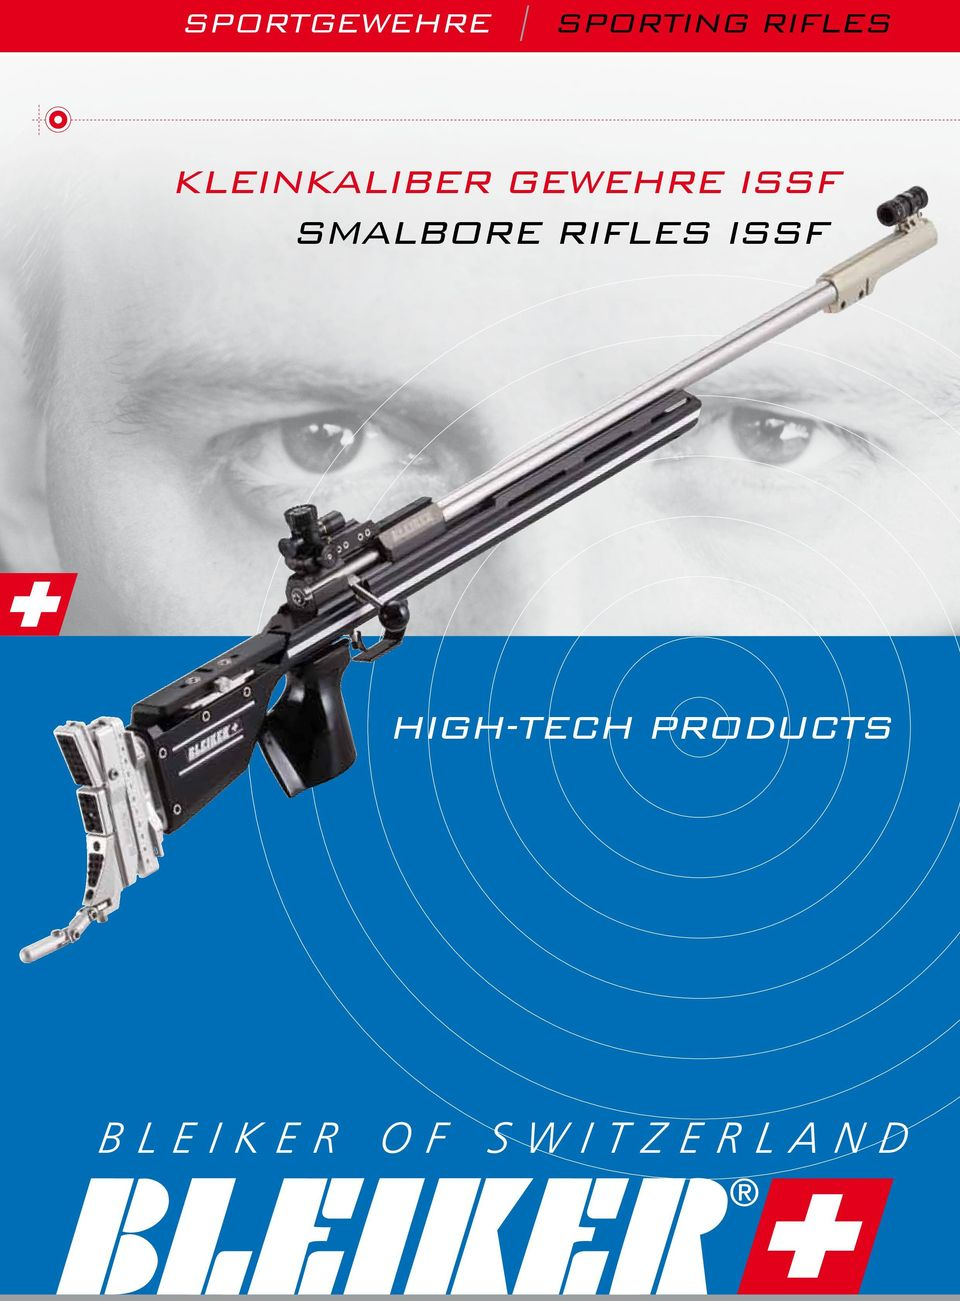 malbore rifle if high-tech